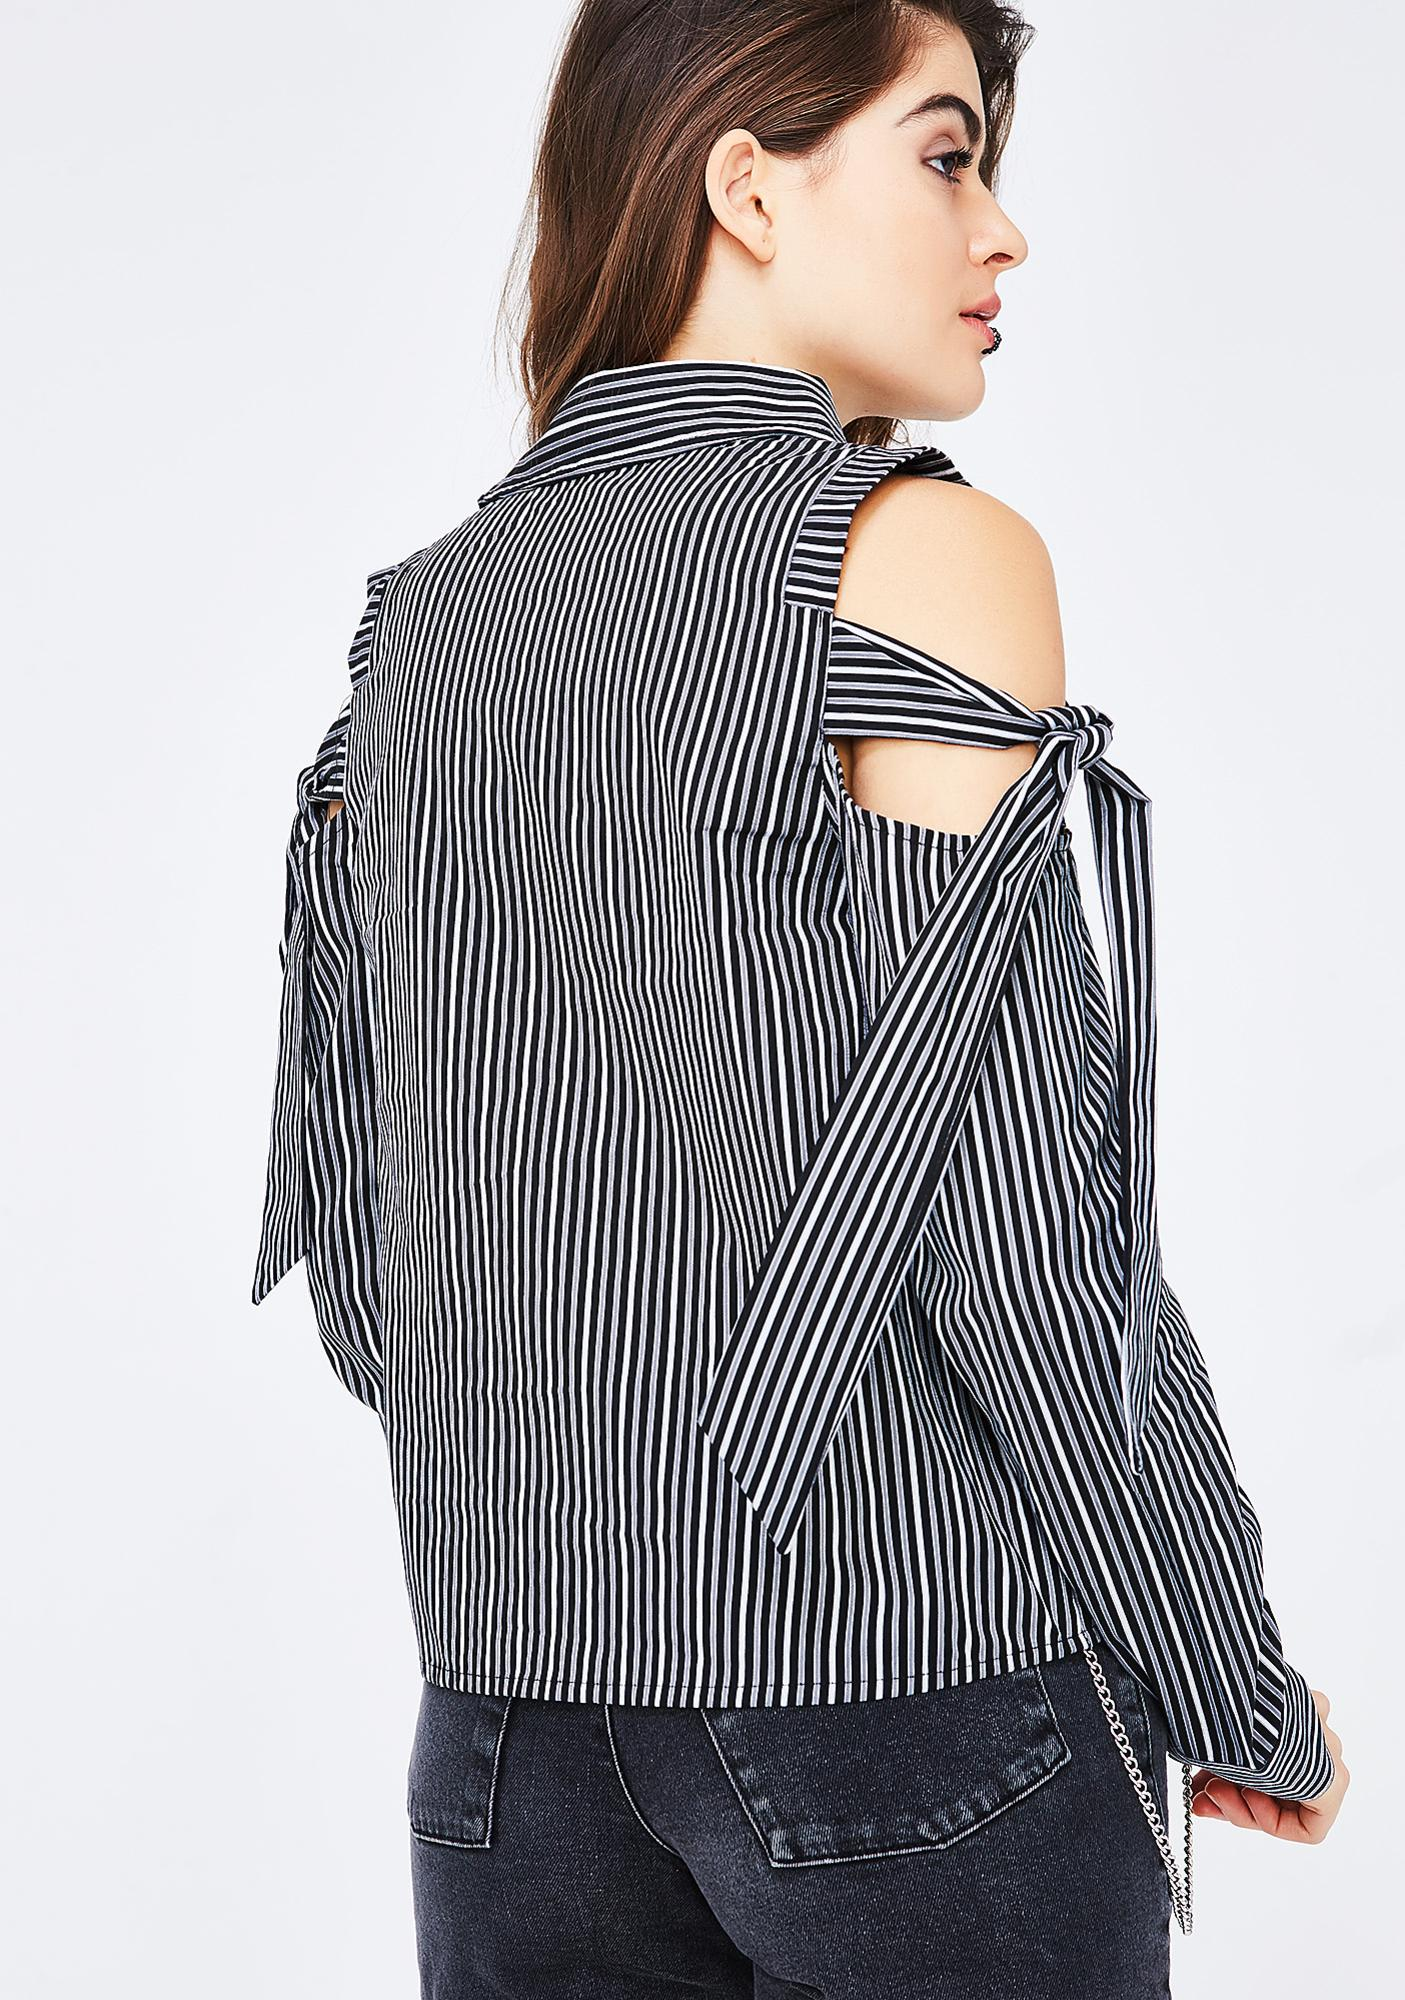 Strictly Business Stripe Top